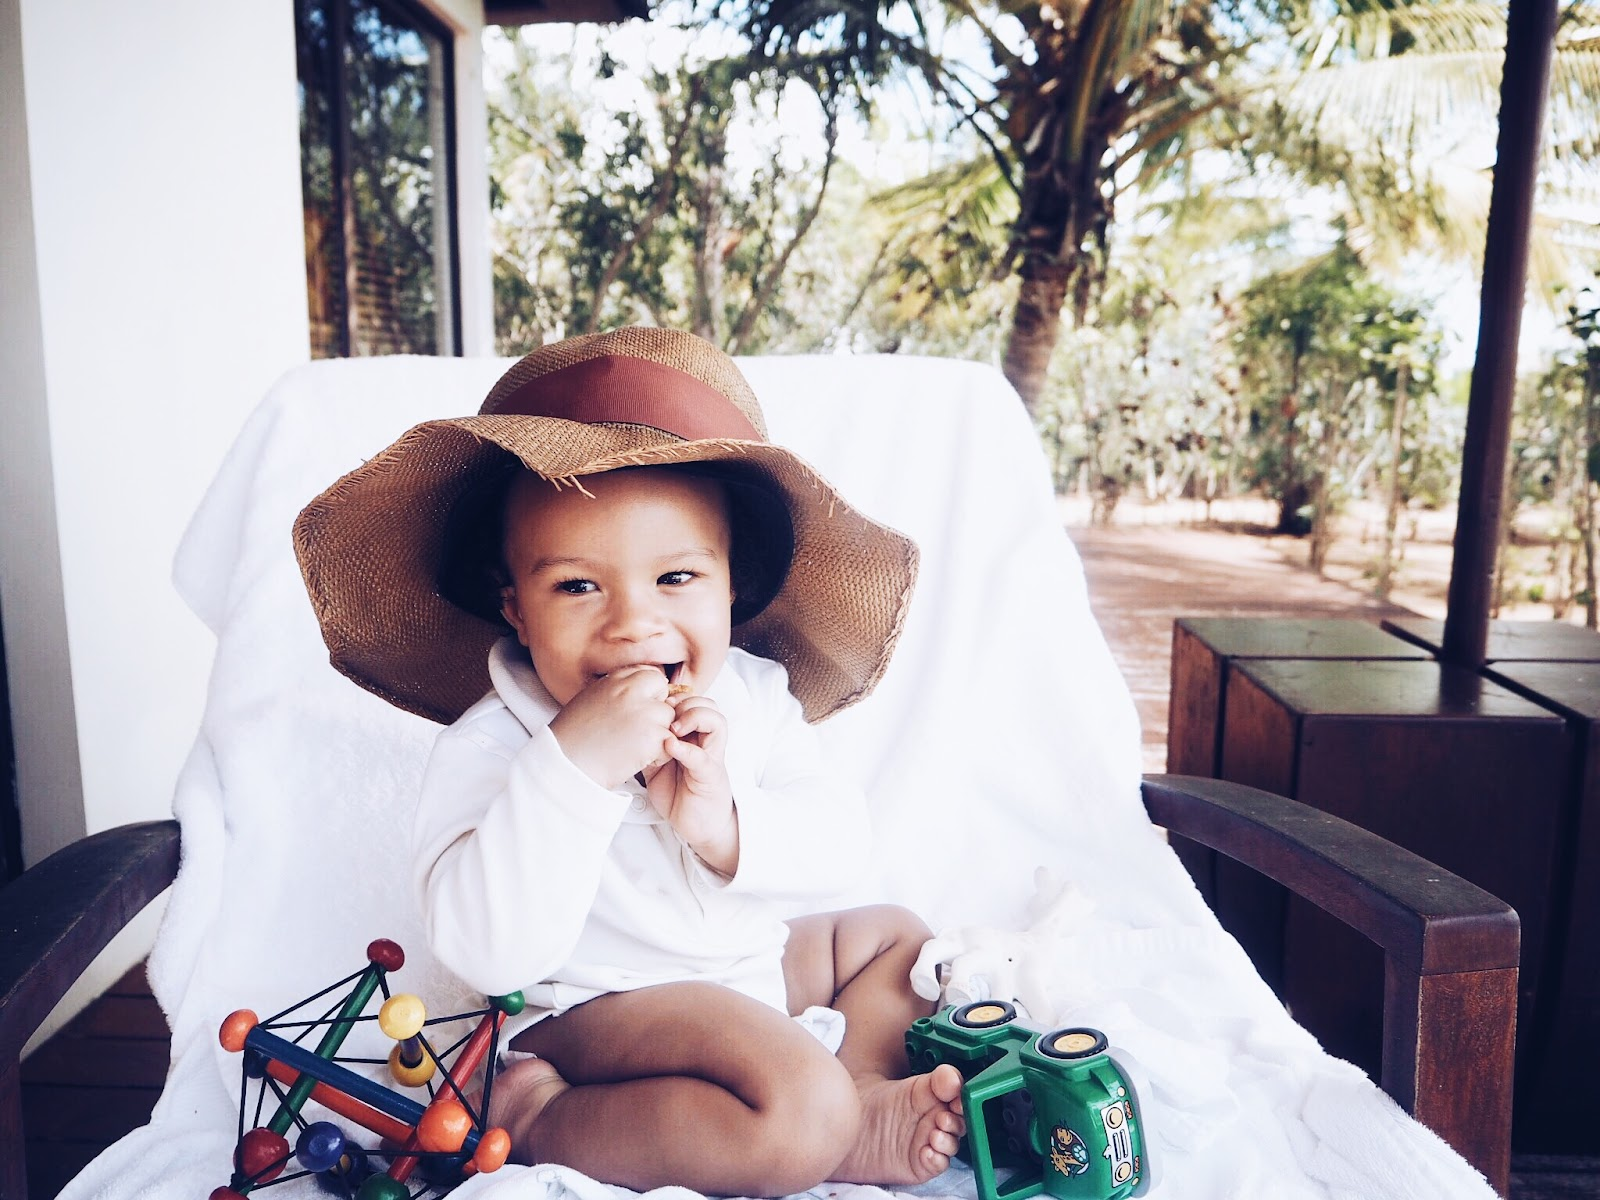 6 sun safety tips for babies and toddlers